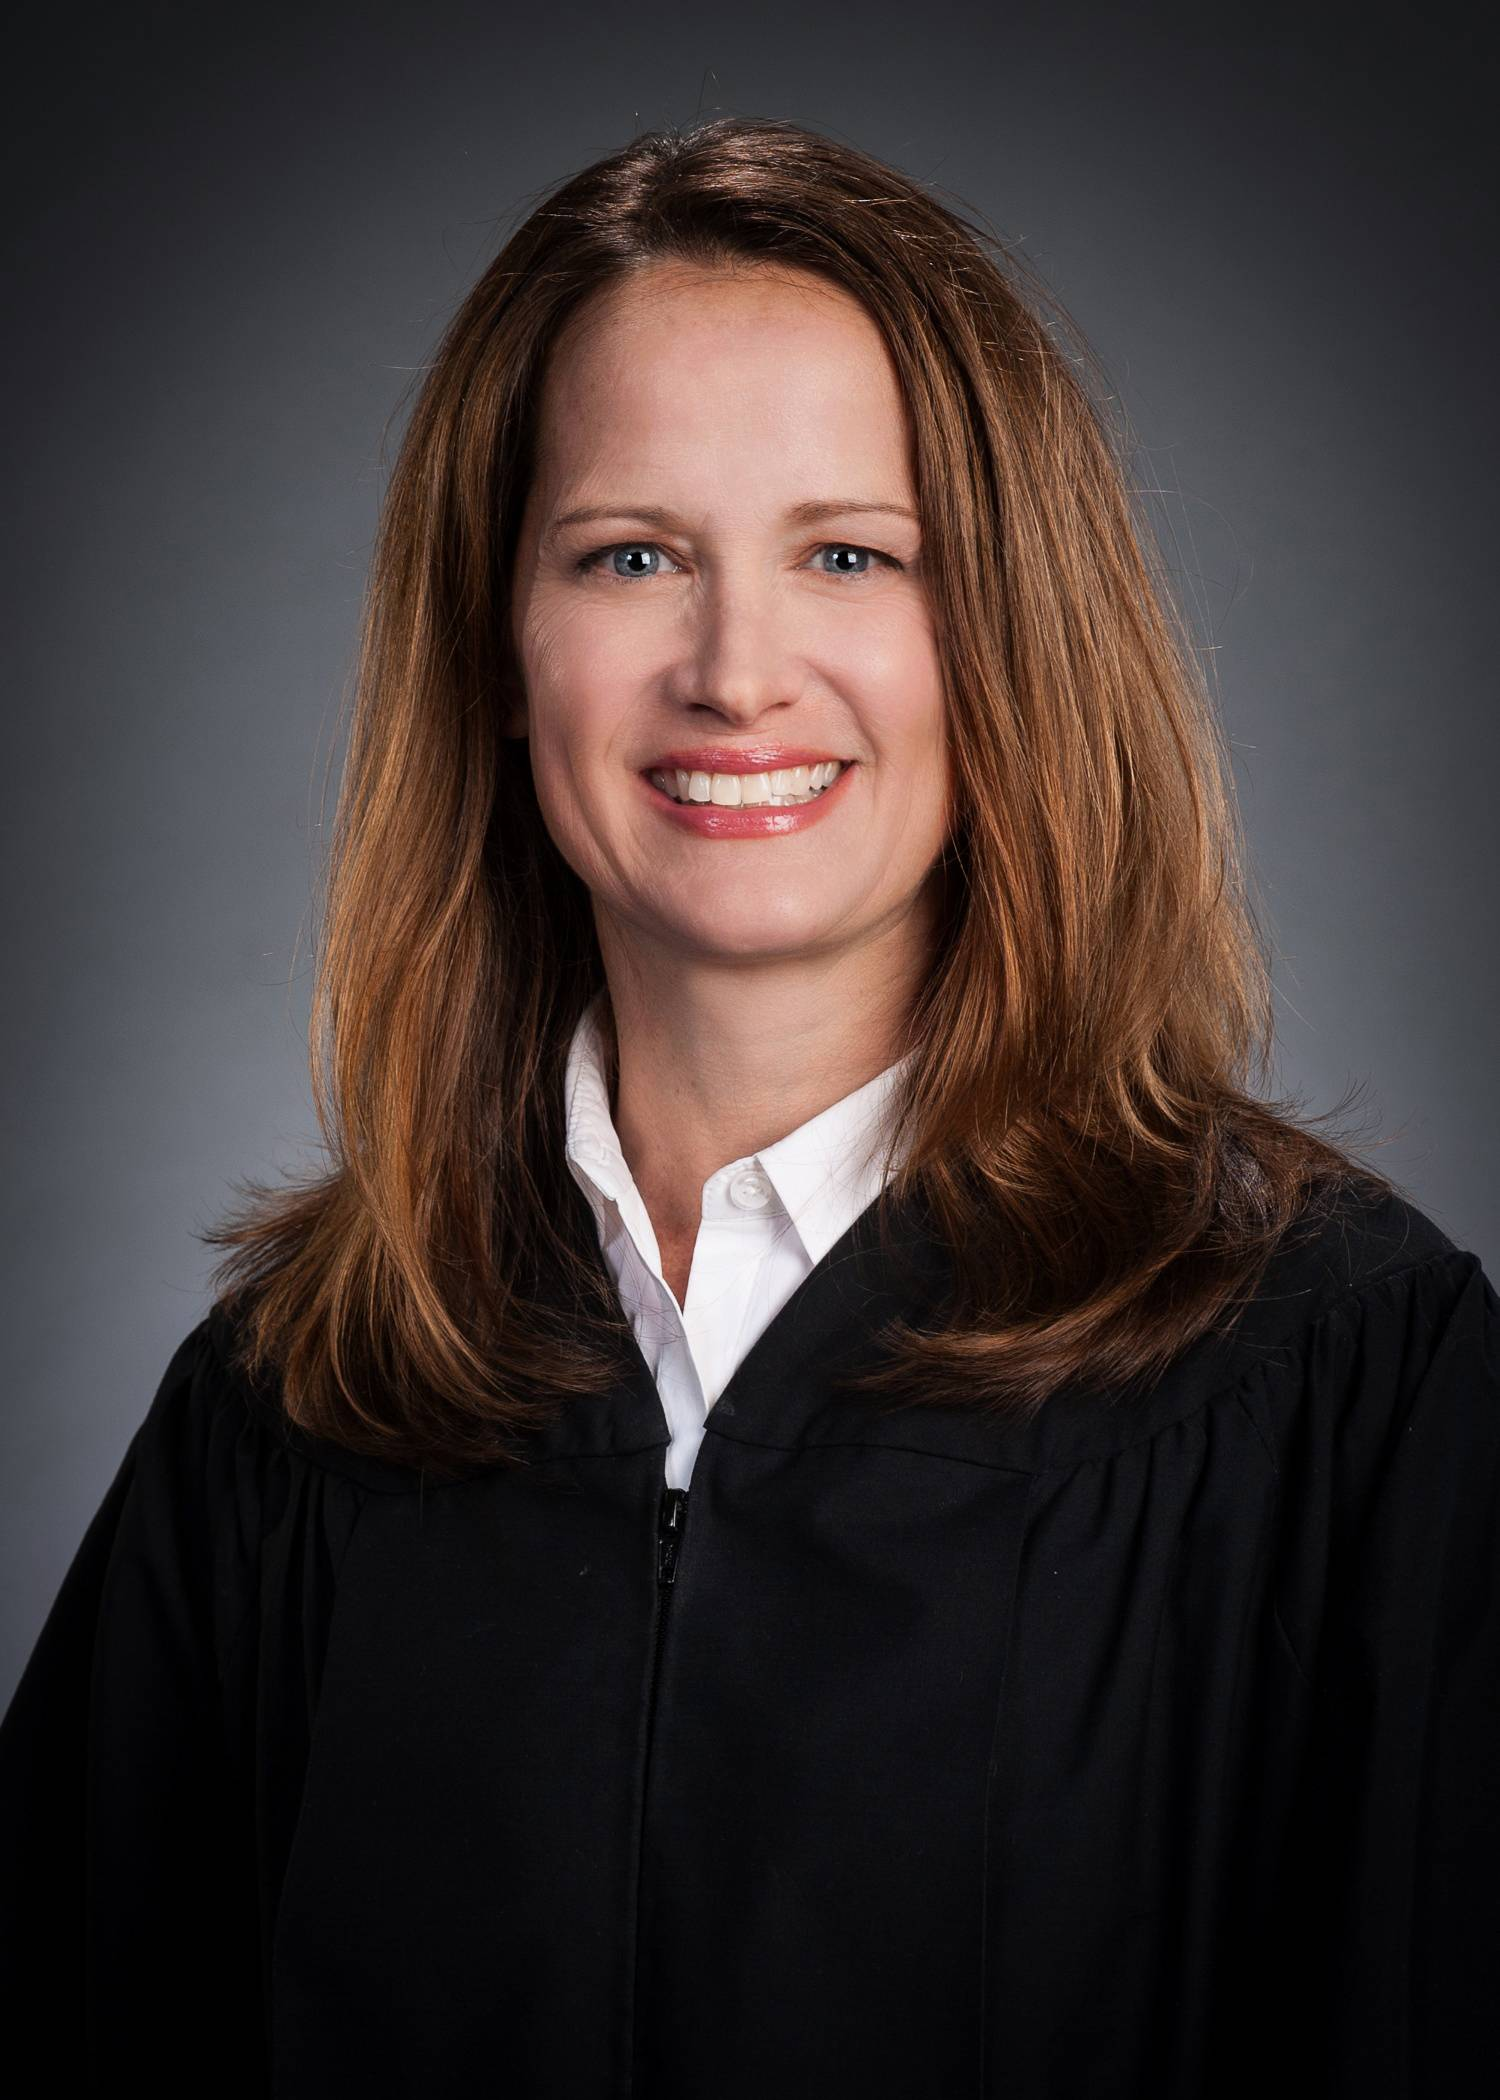 March primary likely for Kane circuit judge seat: Associate judge enters race